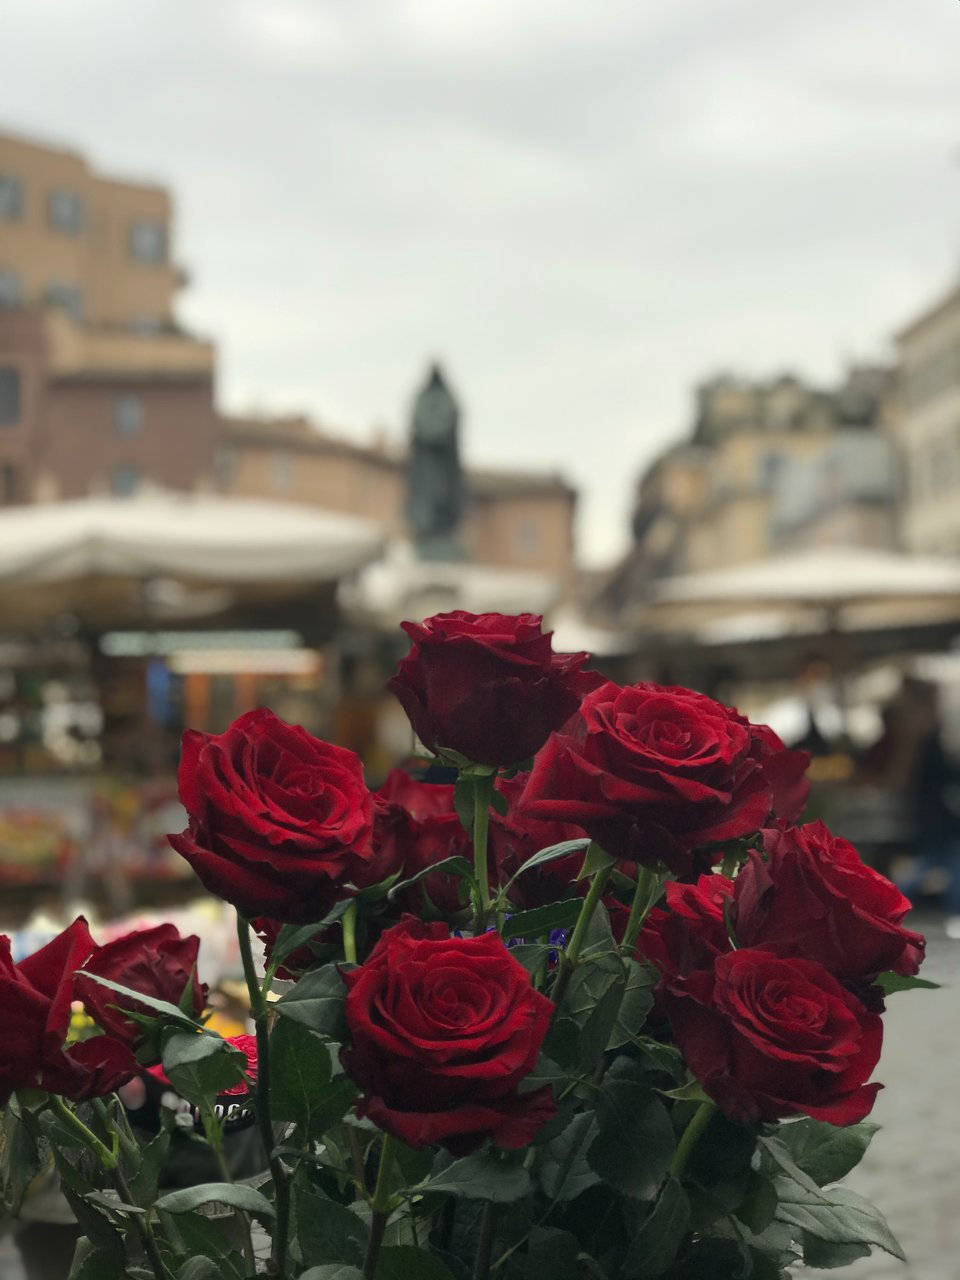 Fiori.Campo De Fiori Rome 2020 All You Need To Know Before You Go